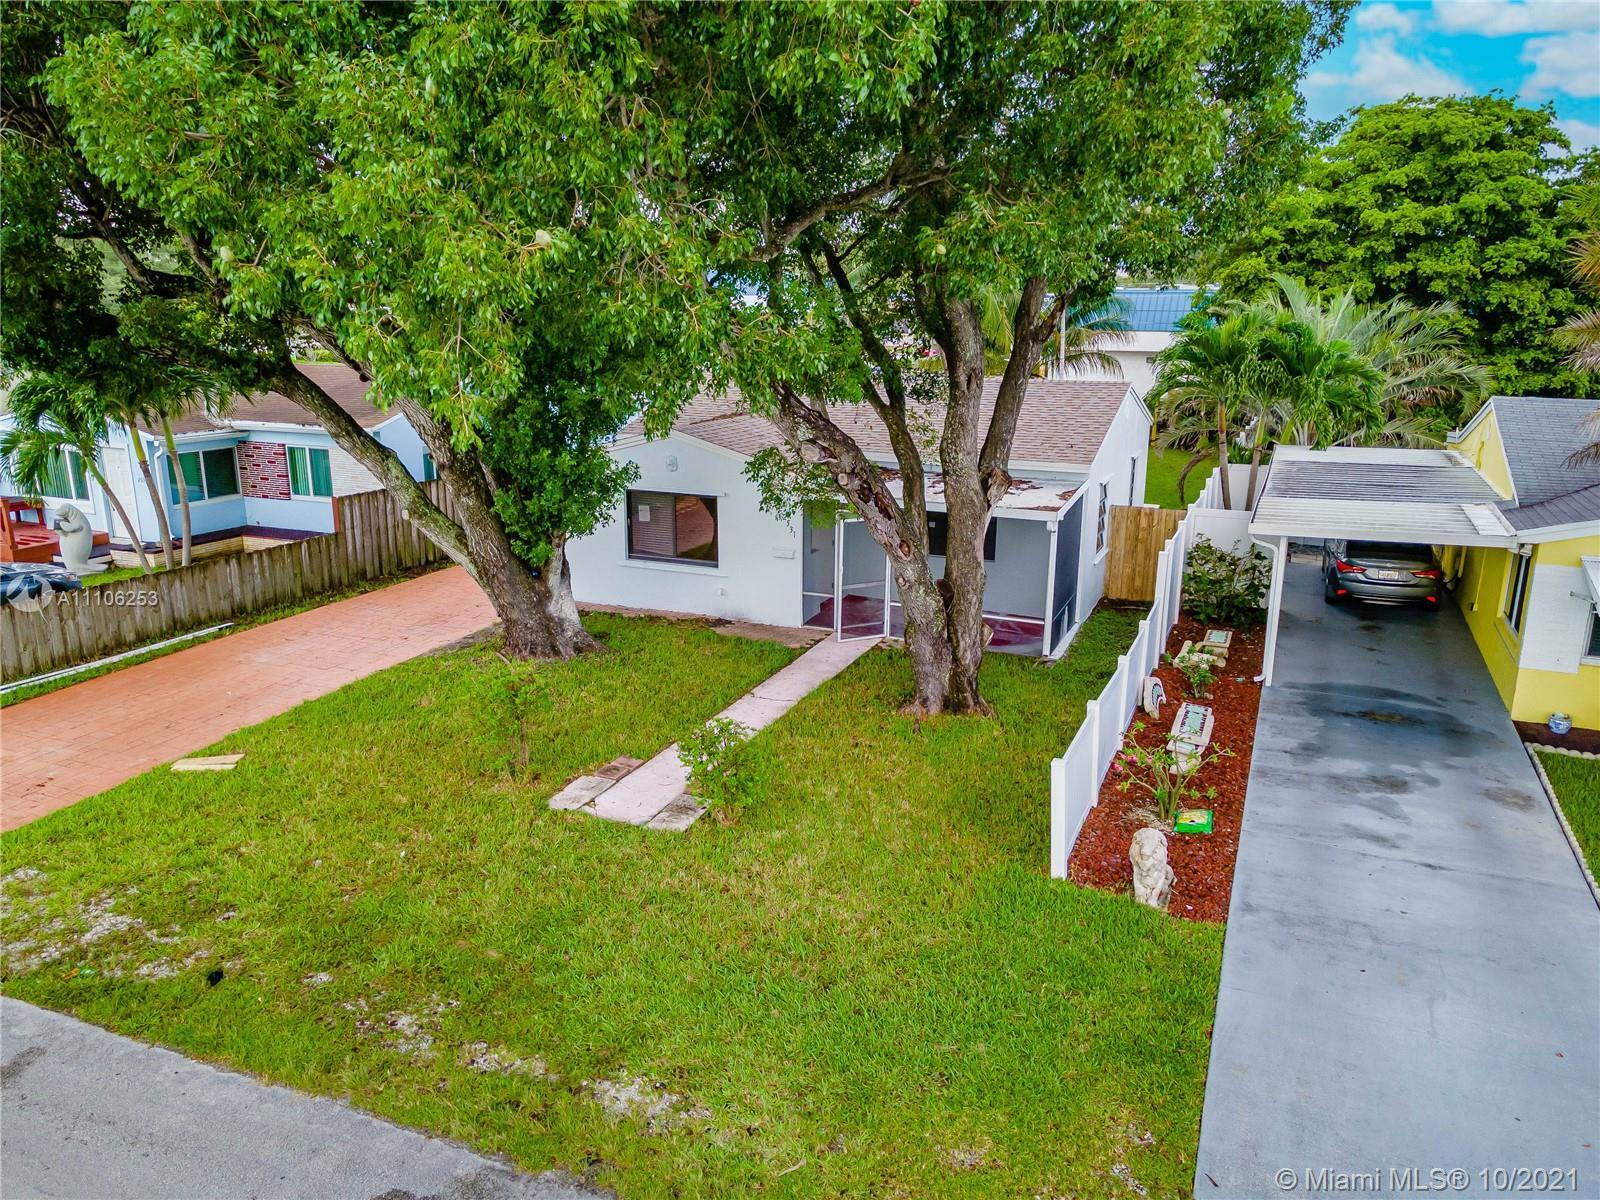 HUGE PRICE REDUCTION! Location!.This FULLY REMODELED 2 beds 1 bath & 1 extra room house is within 5